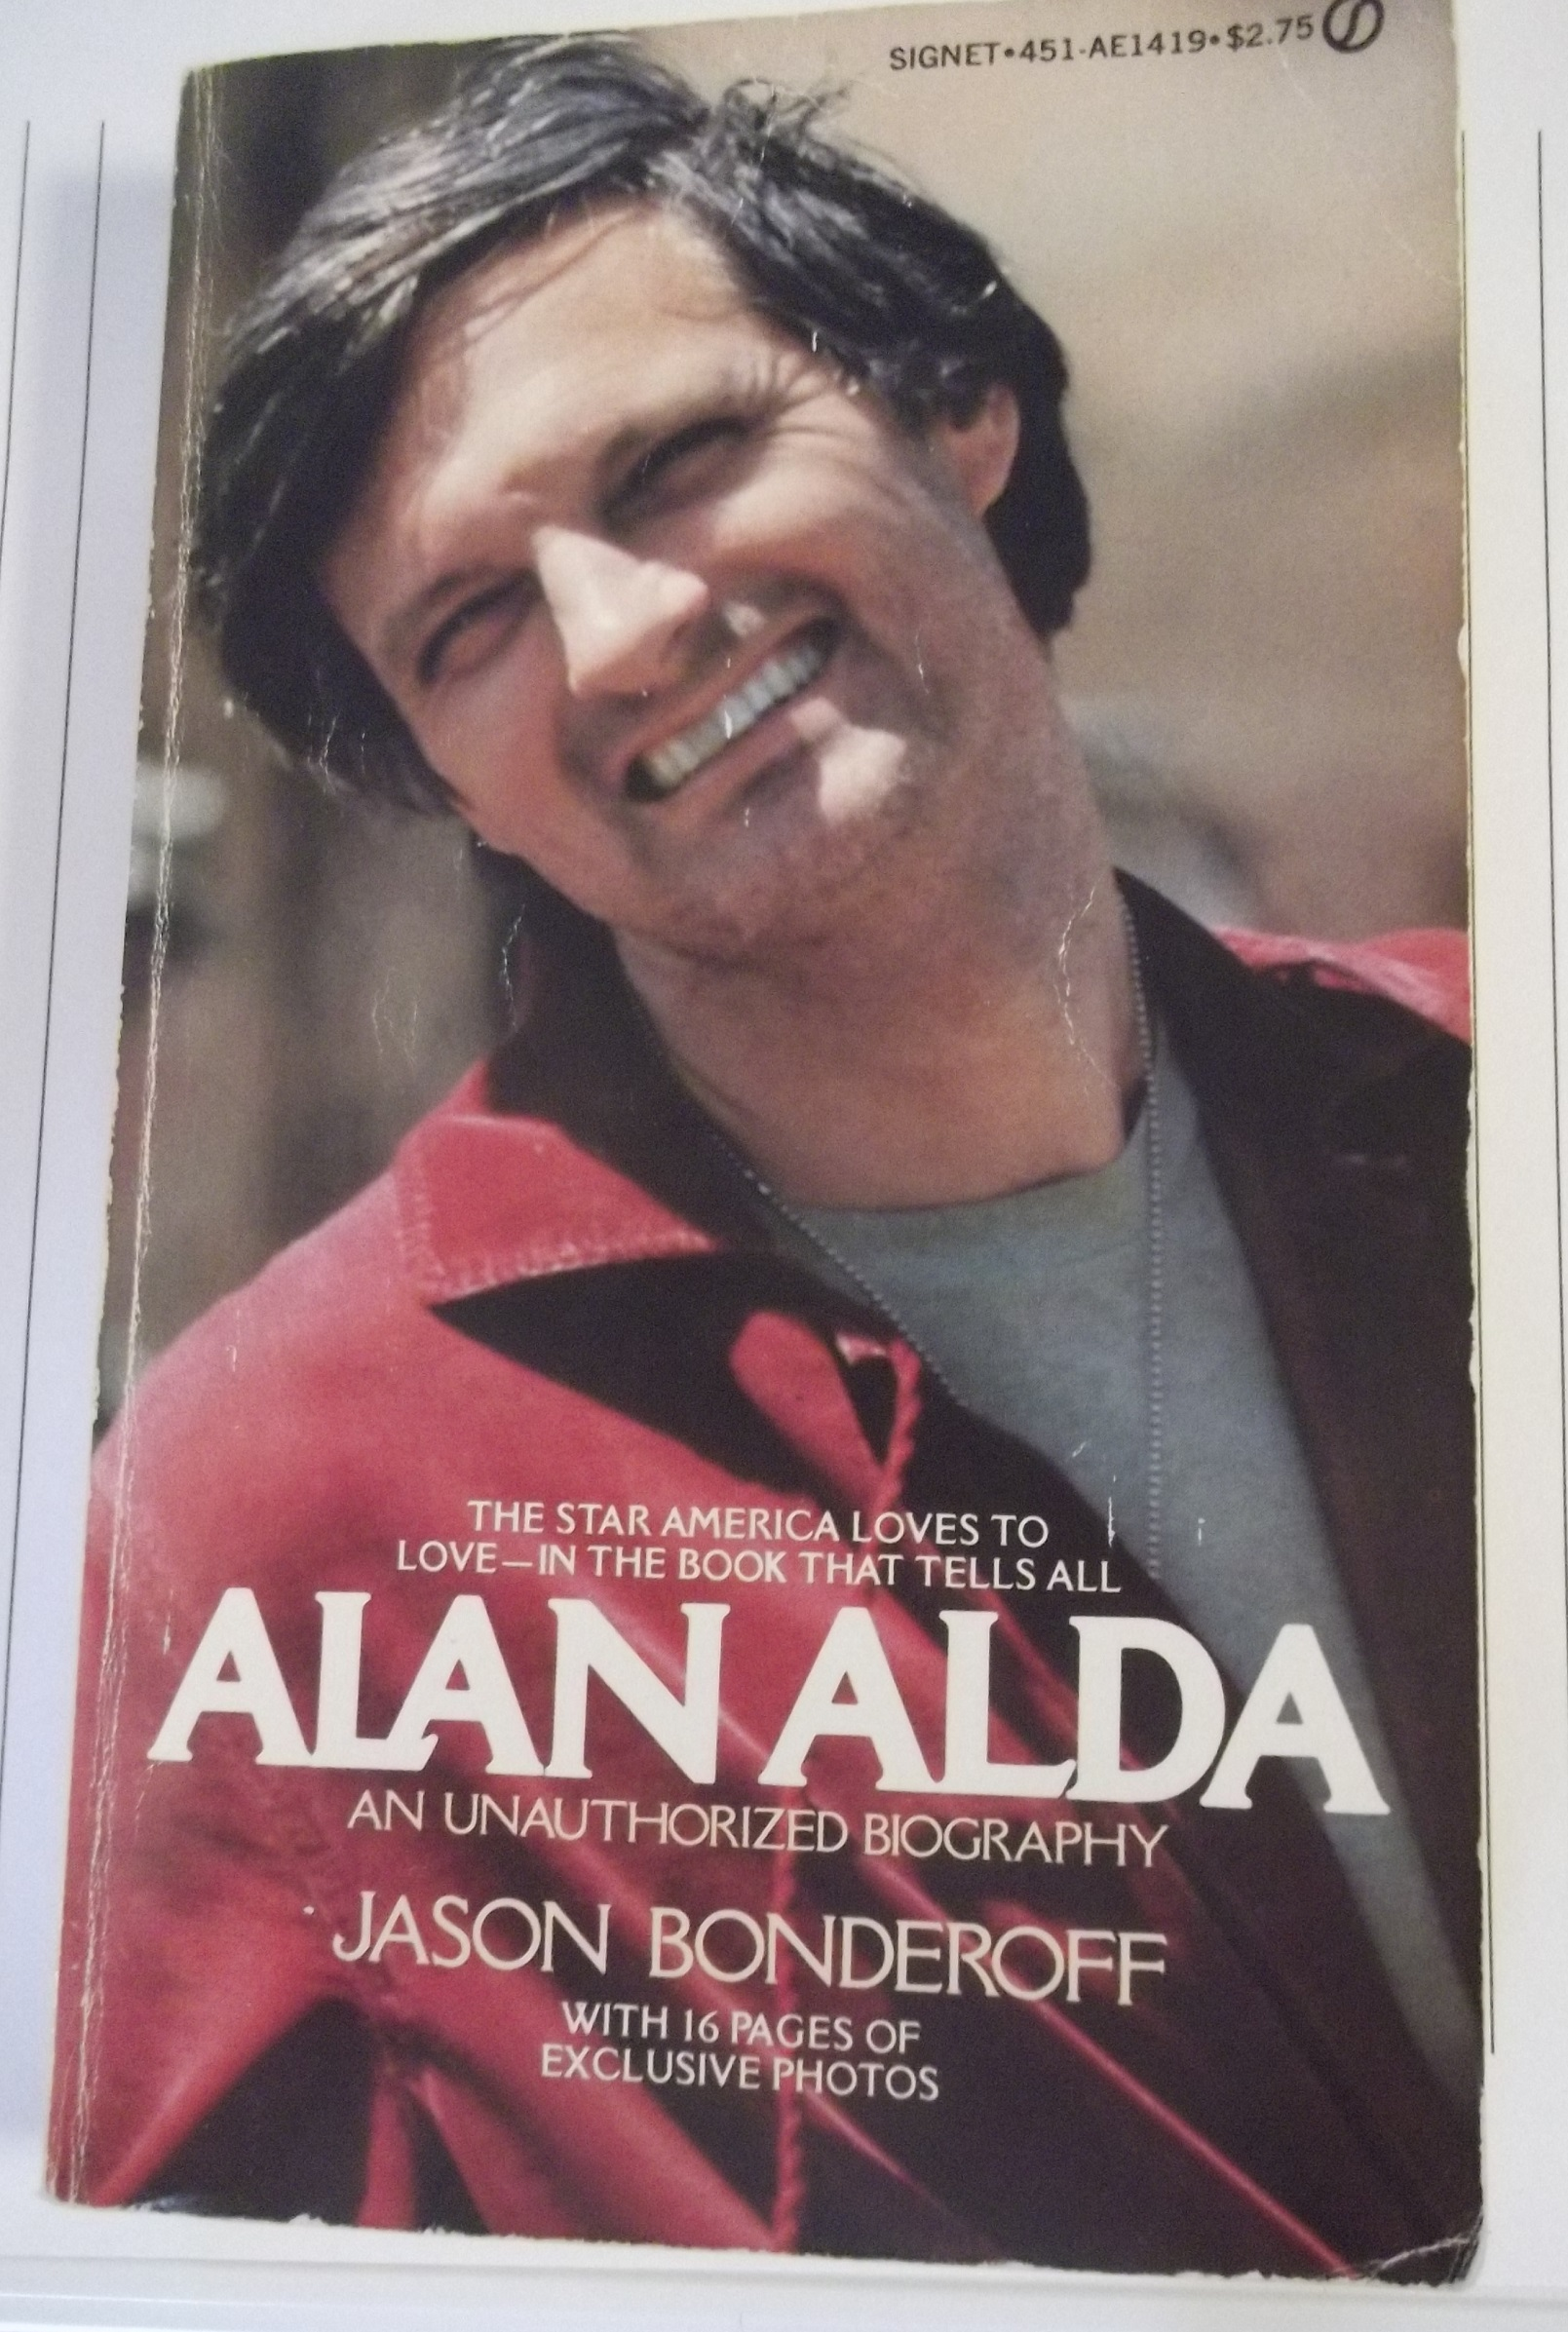 Photo I took of Alan Alda book I was reading earlier